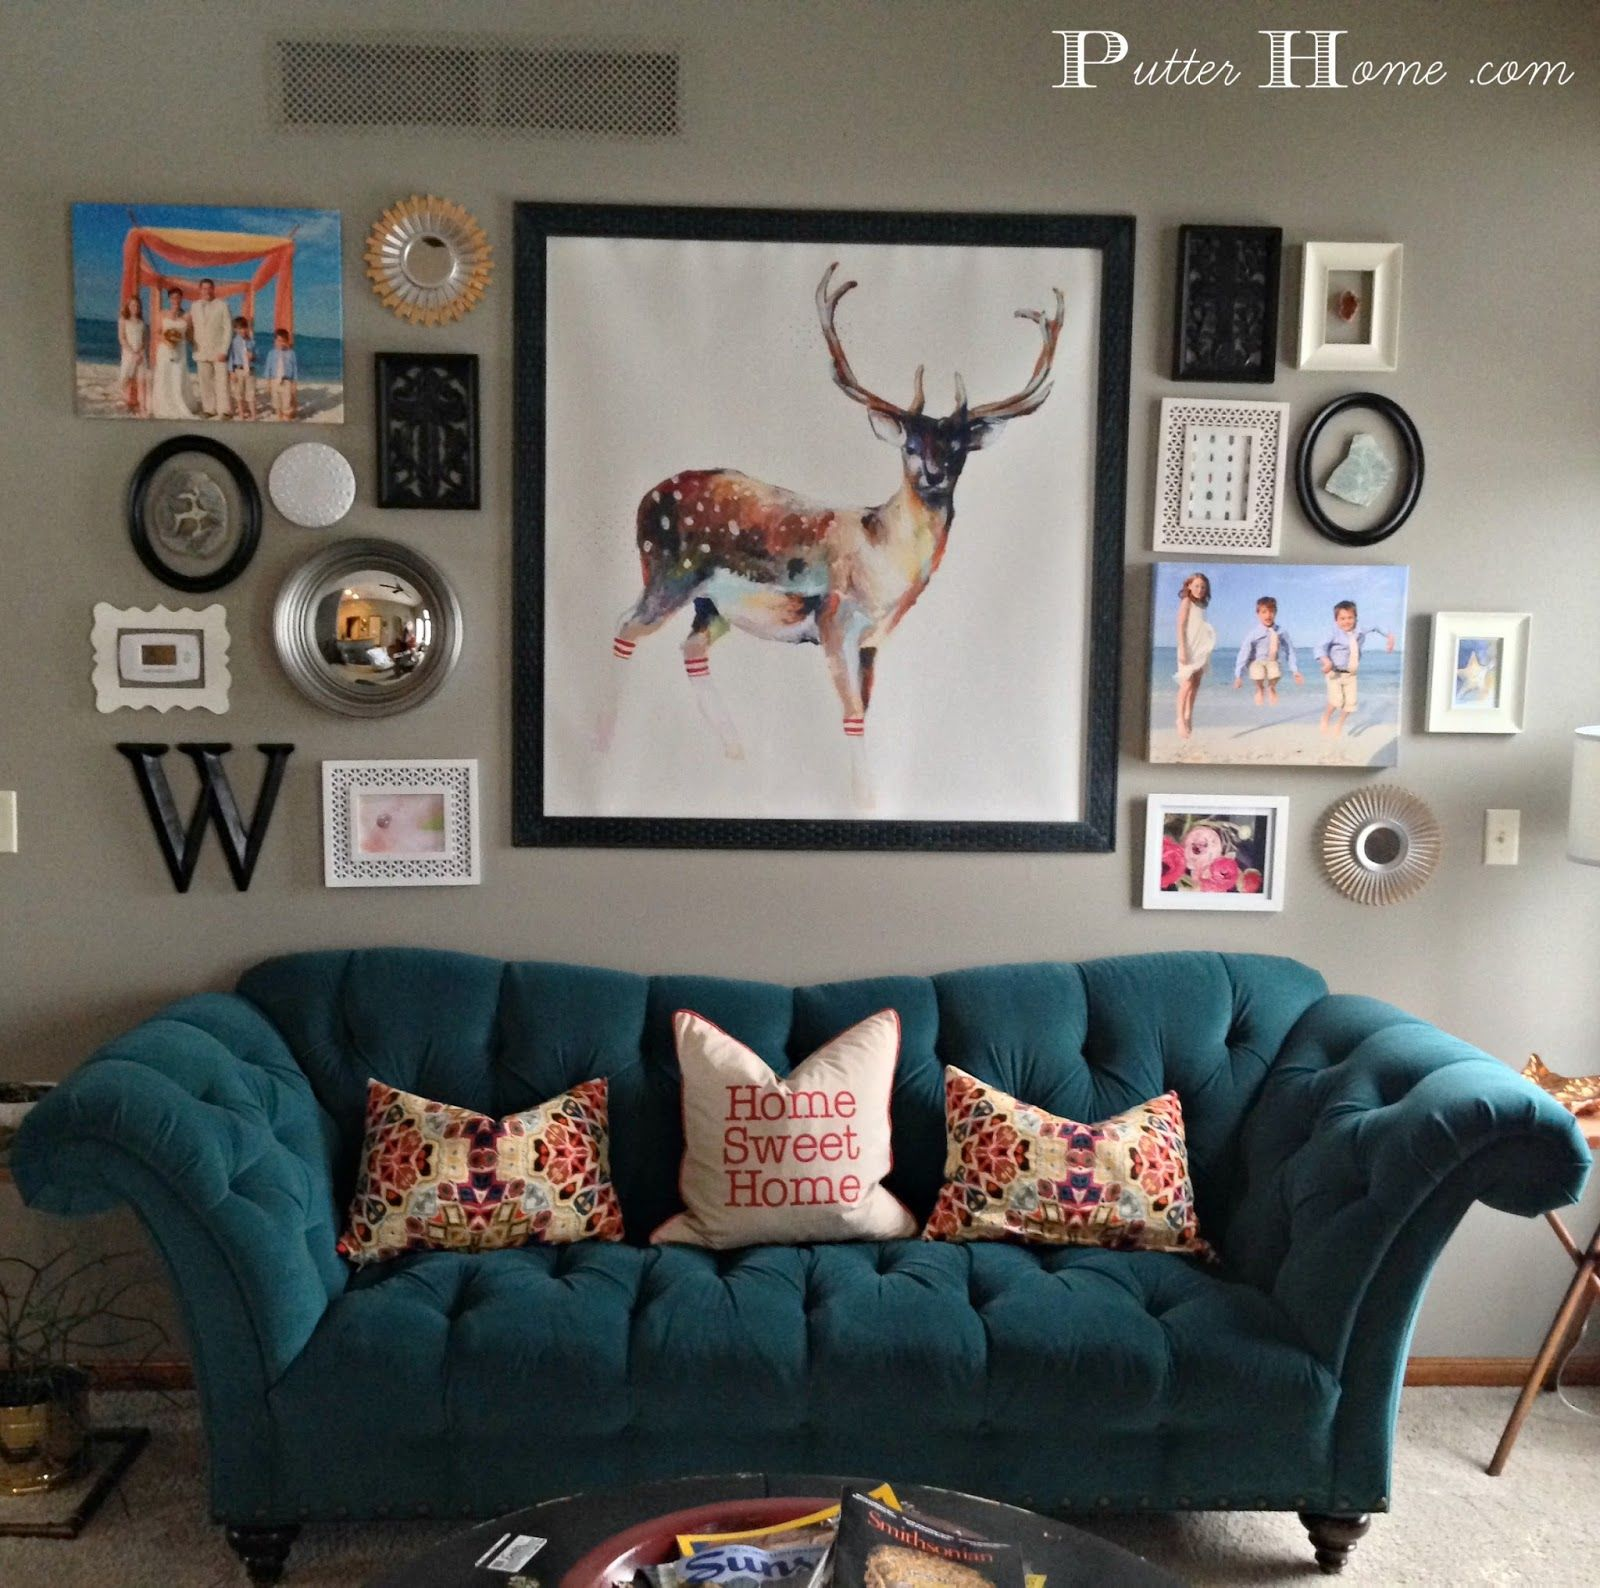 Putter Home Awesome Living Room Wall Collage Living Room Update Living Room Interior Room #photo #collage #in #living #room